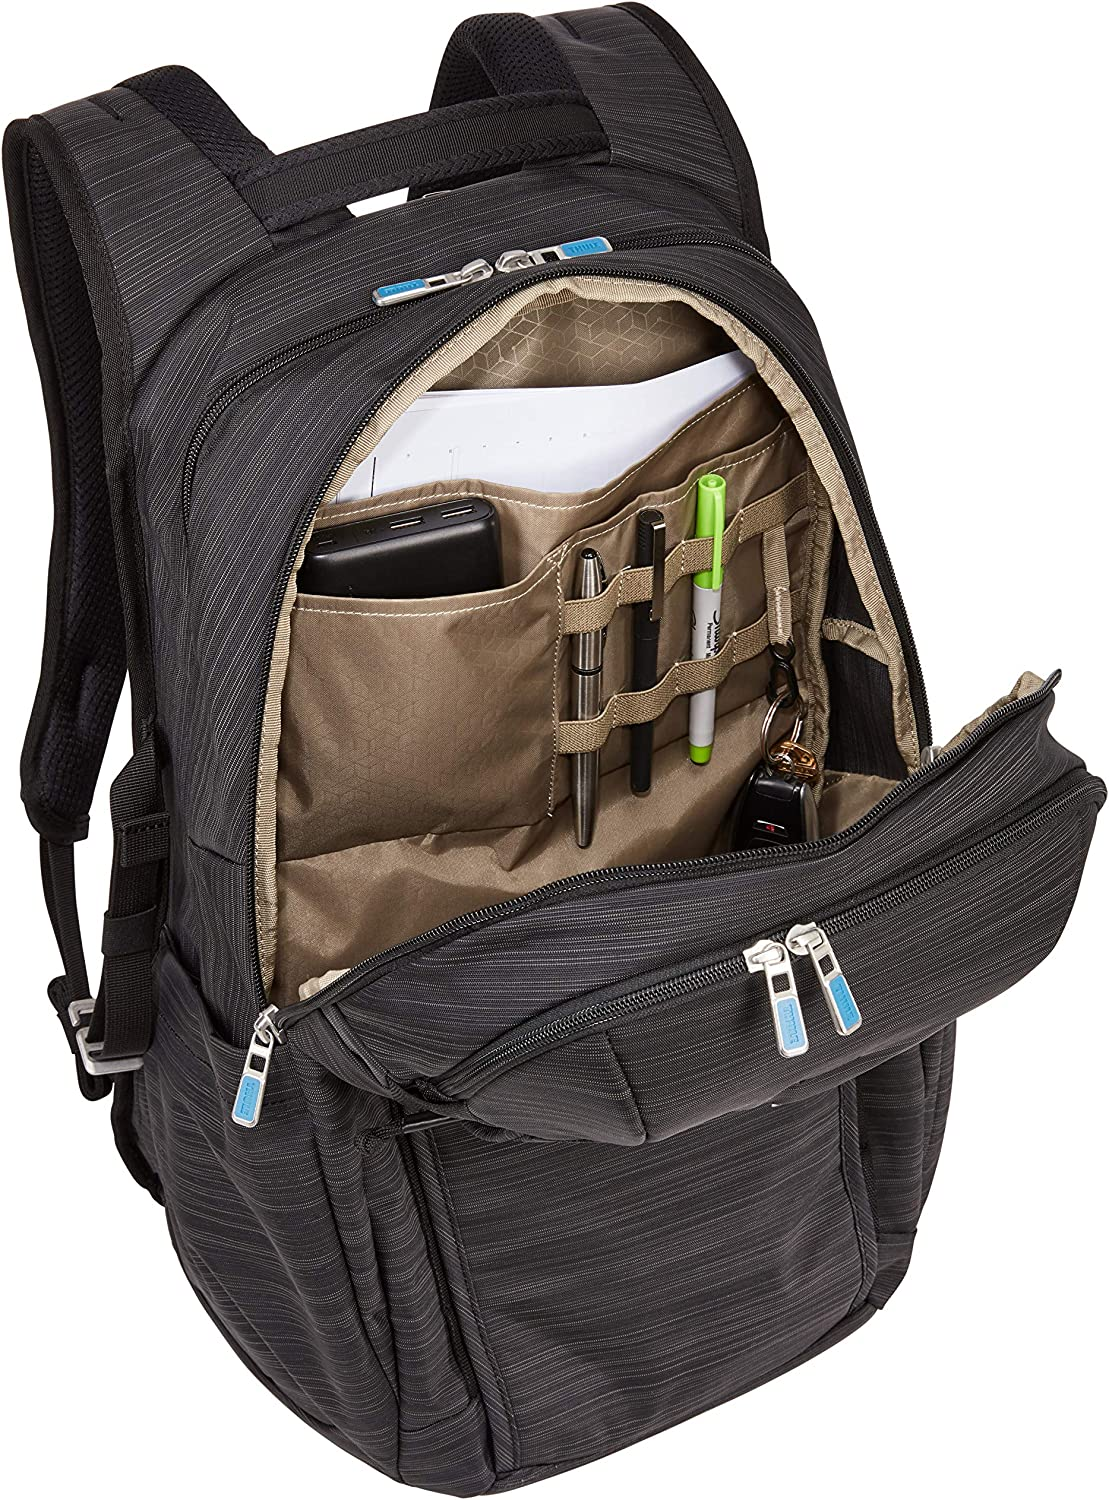 Thule Contruct Backpack